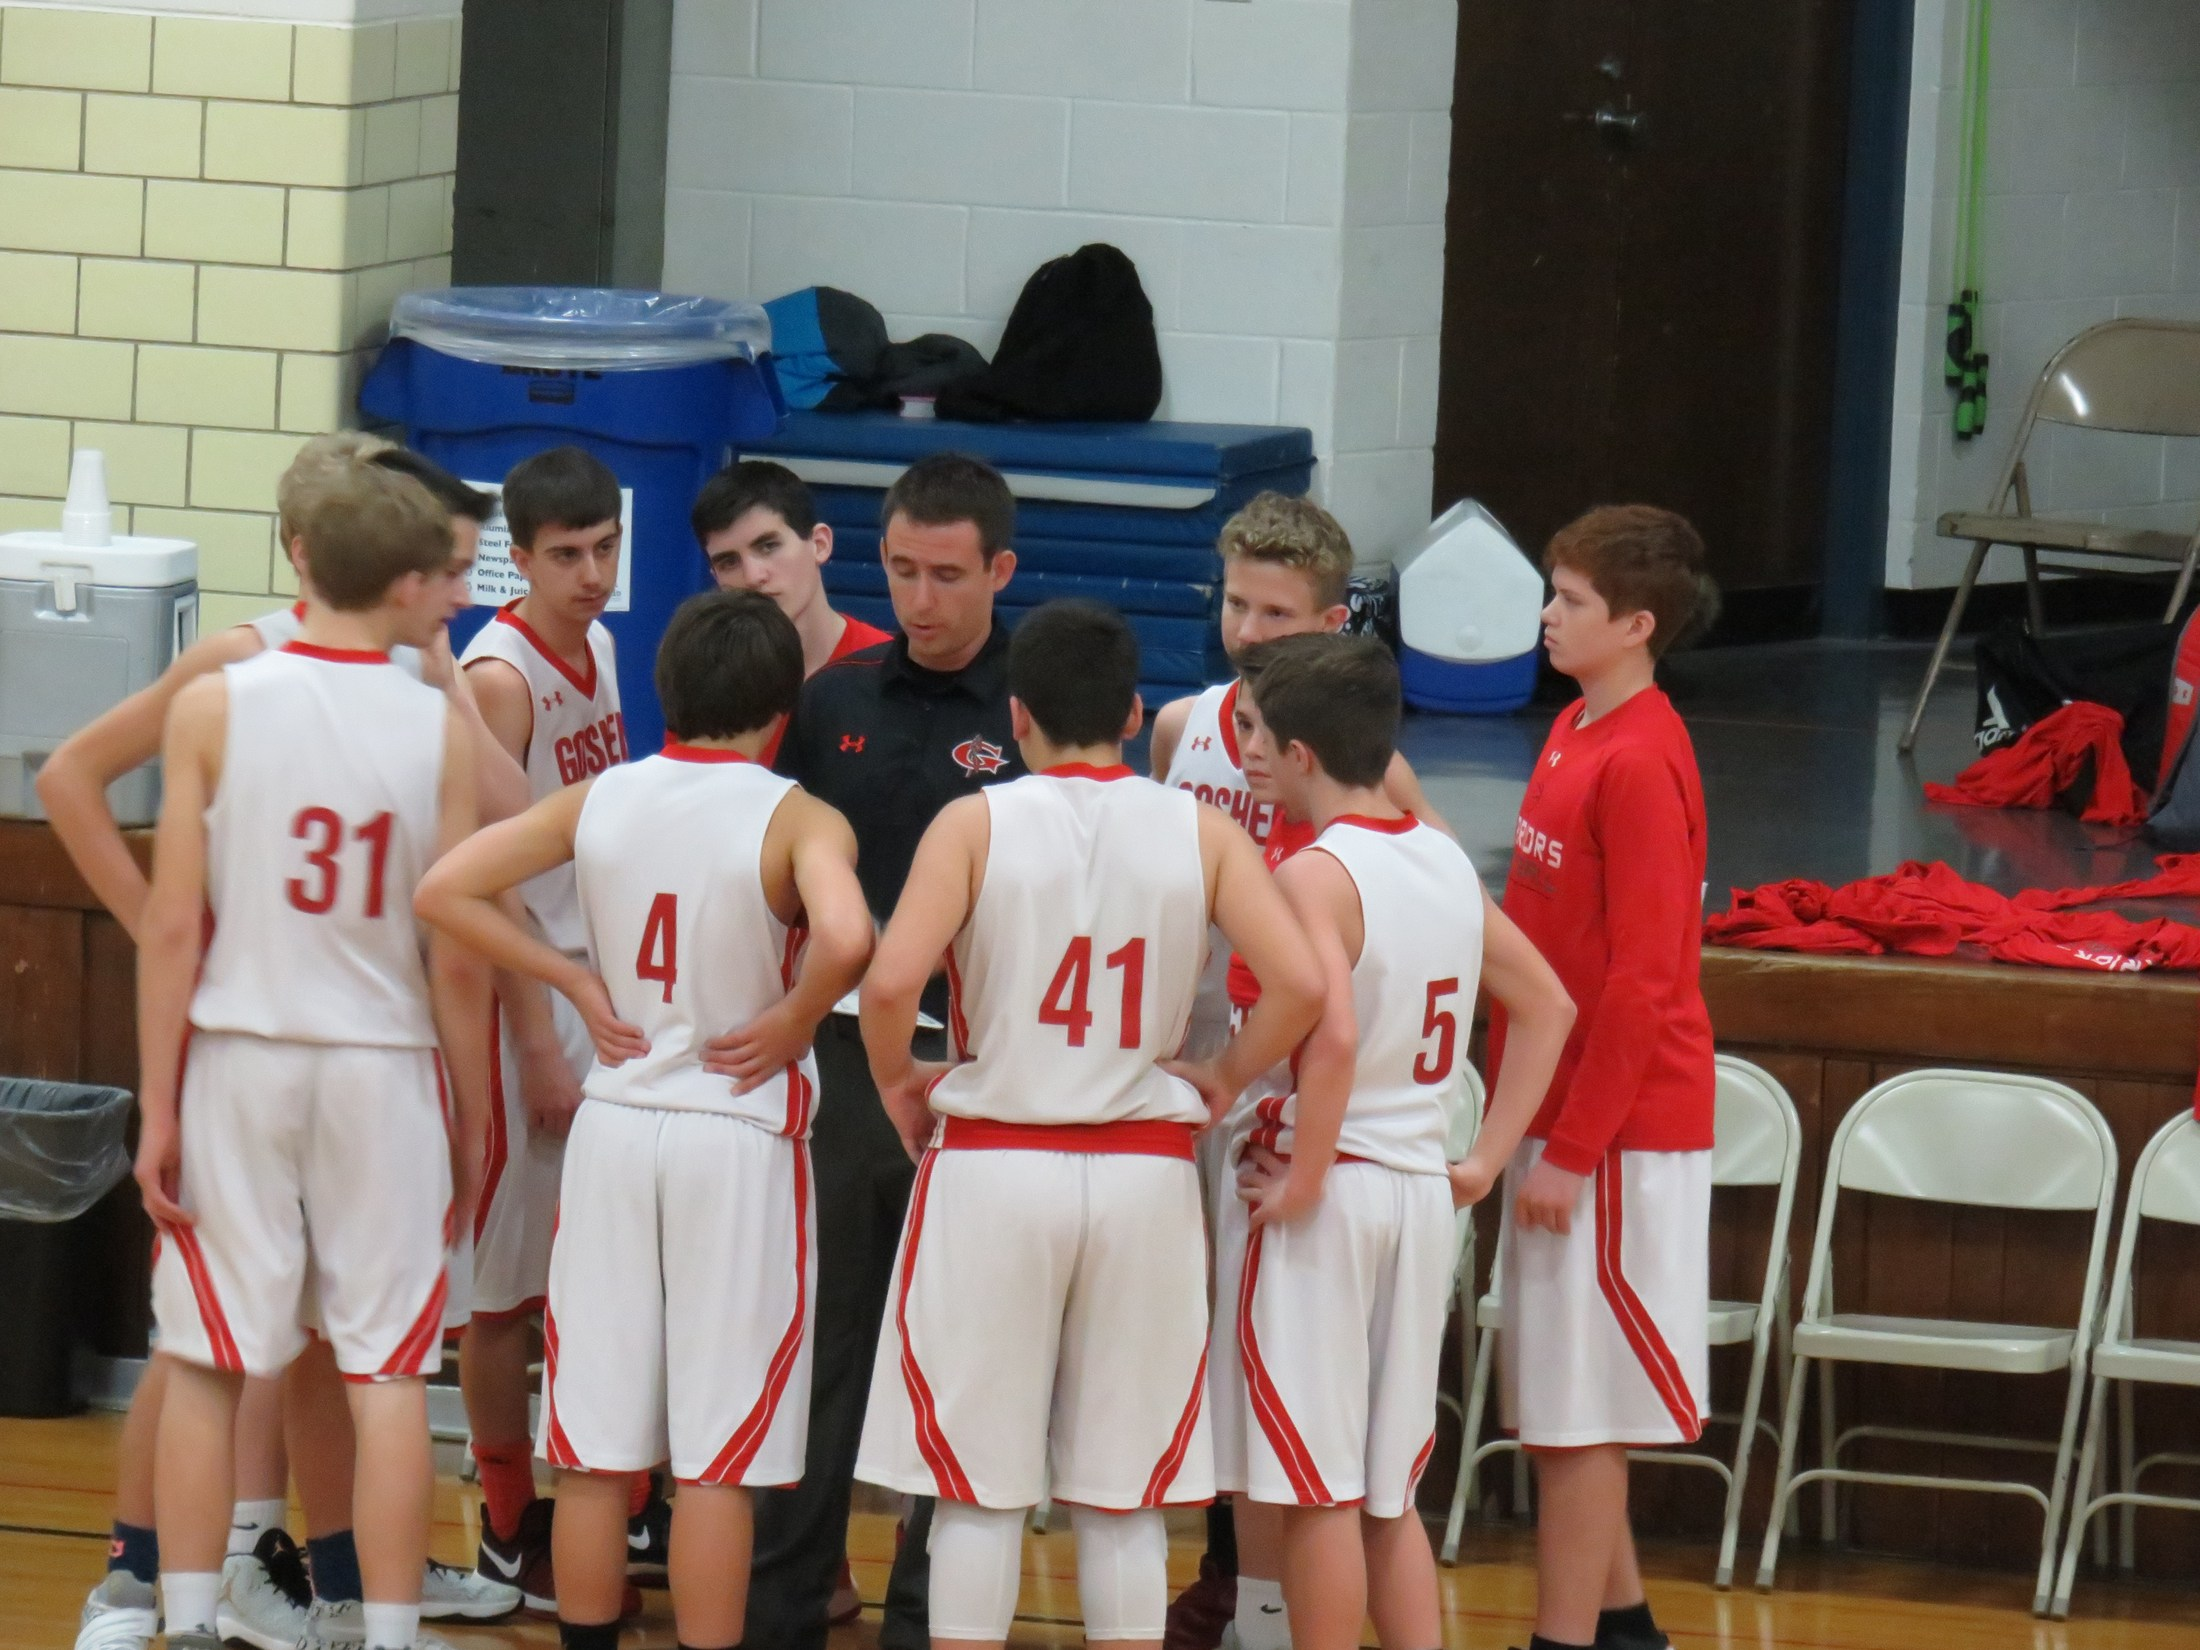 8th grade team during time-out